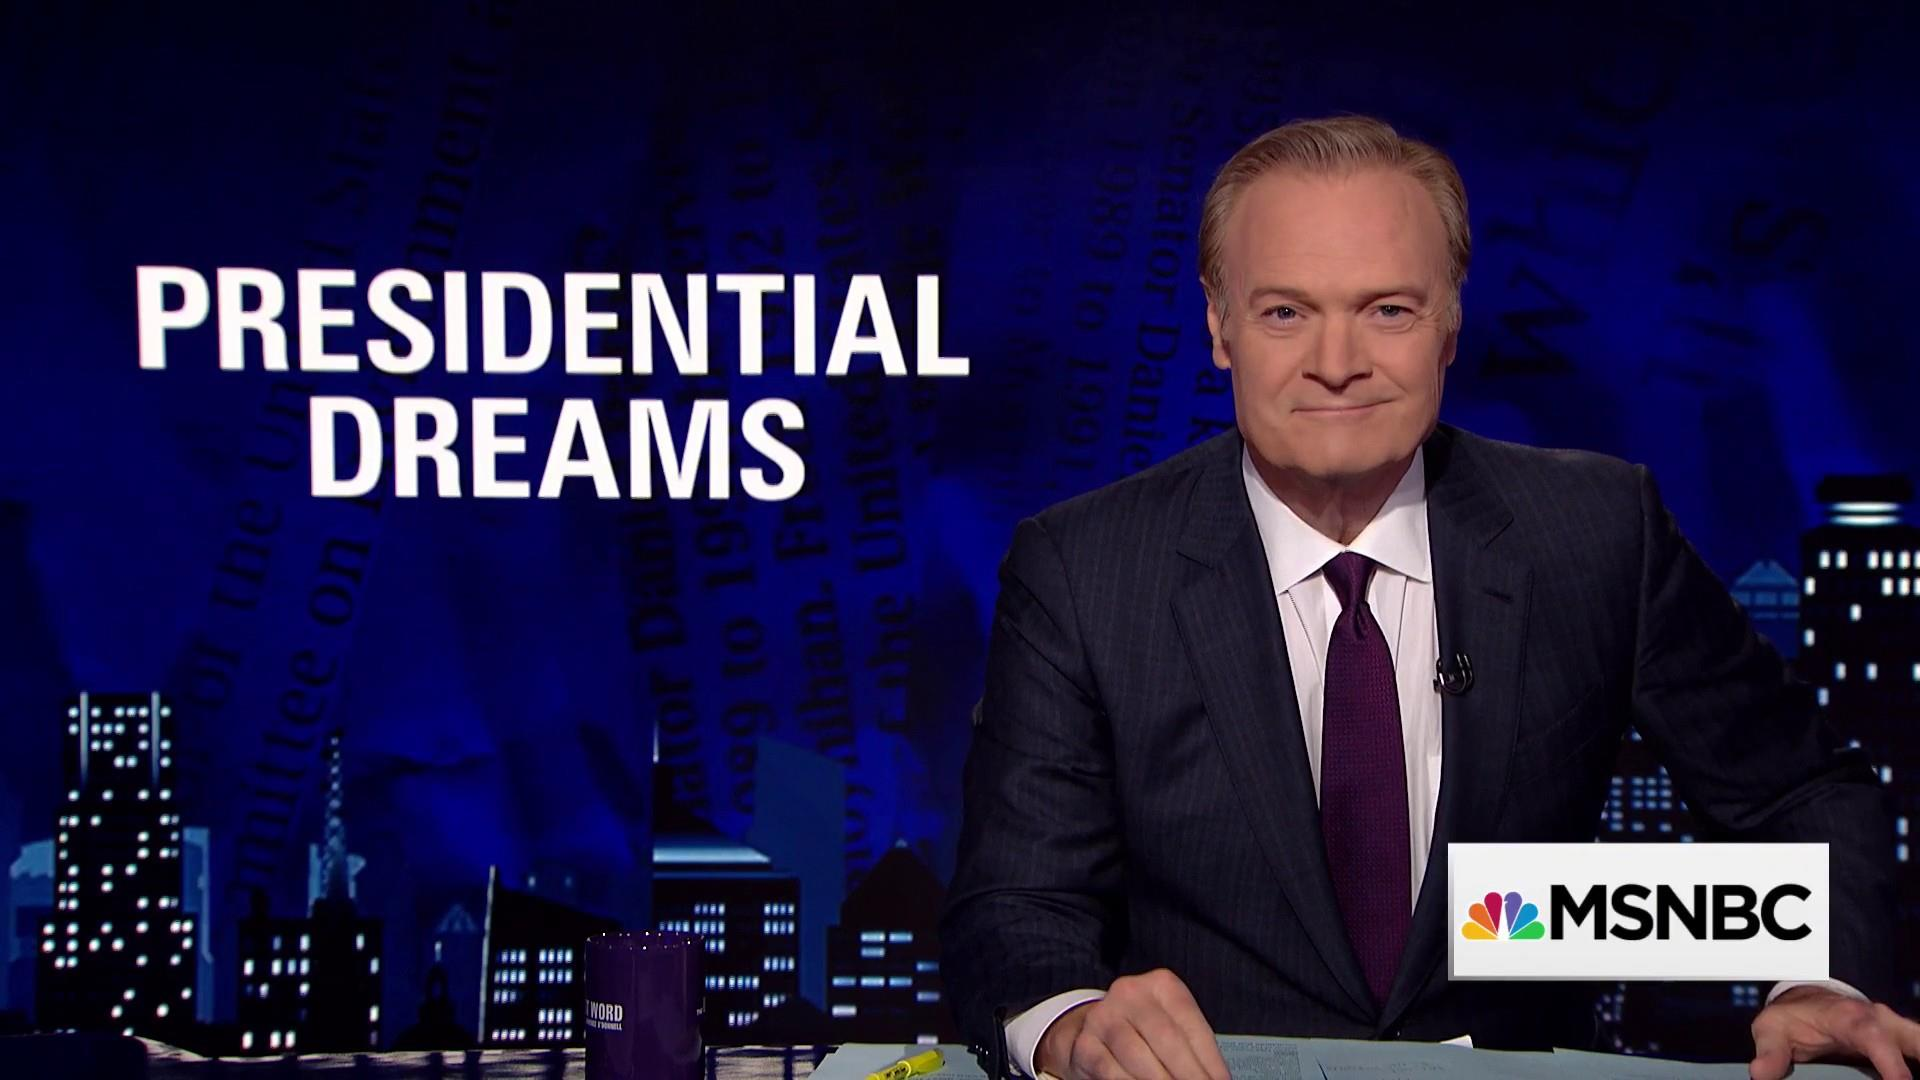 Lawrence: Trump gives Republicans presidential dreams